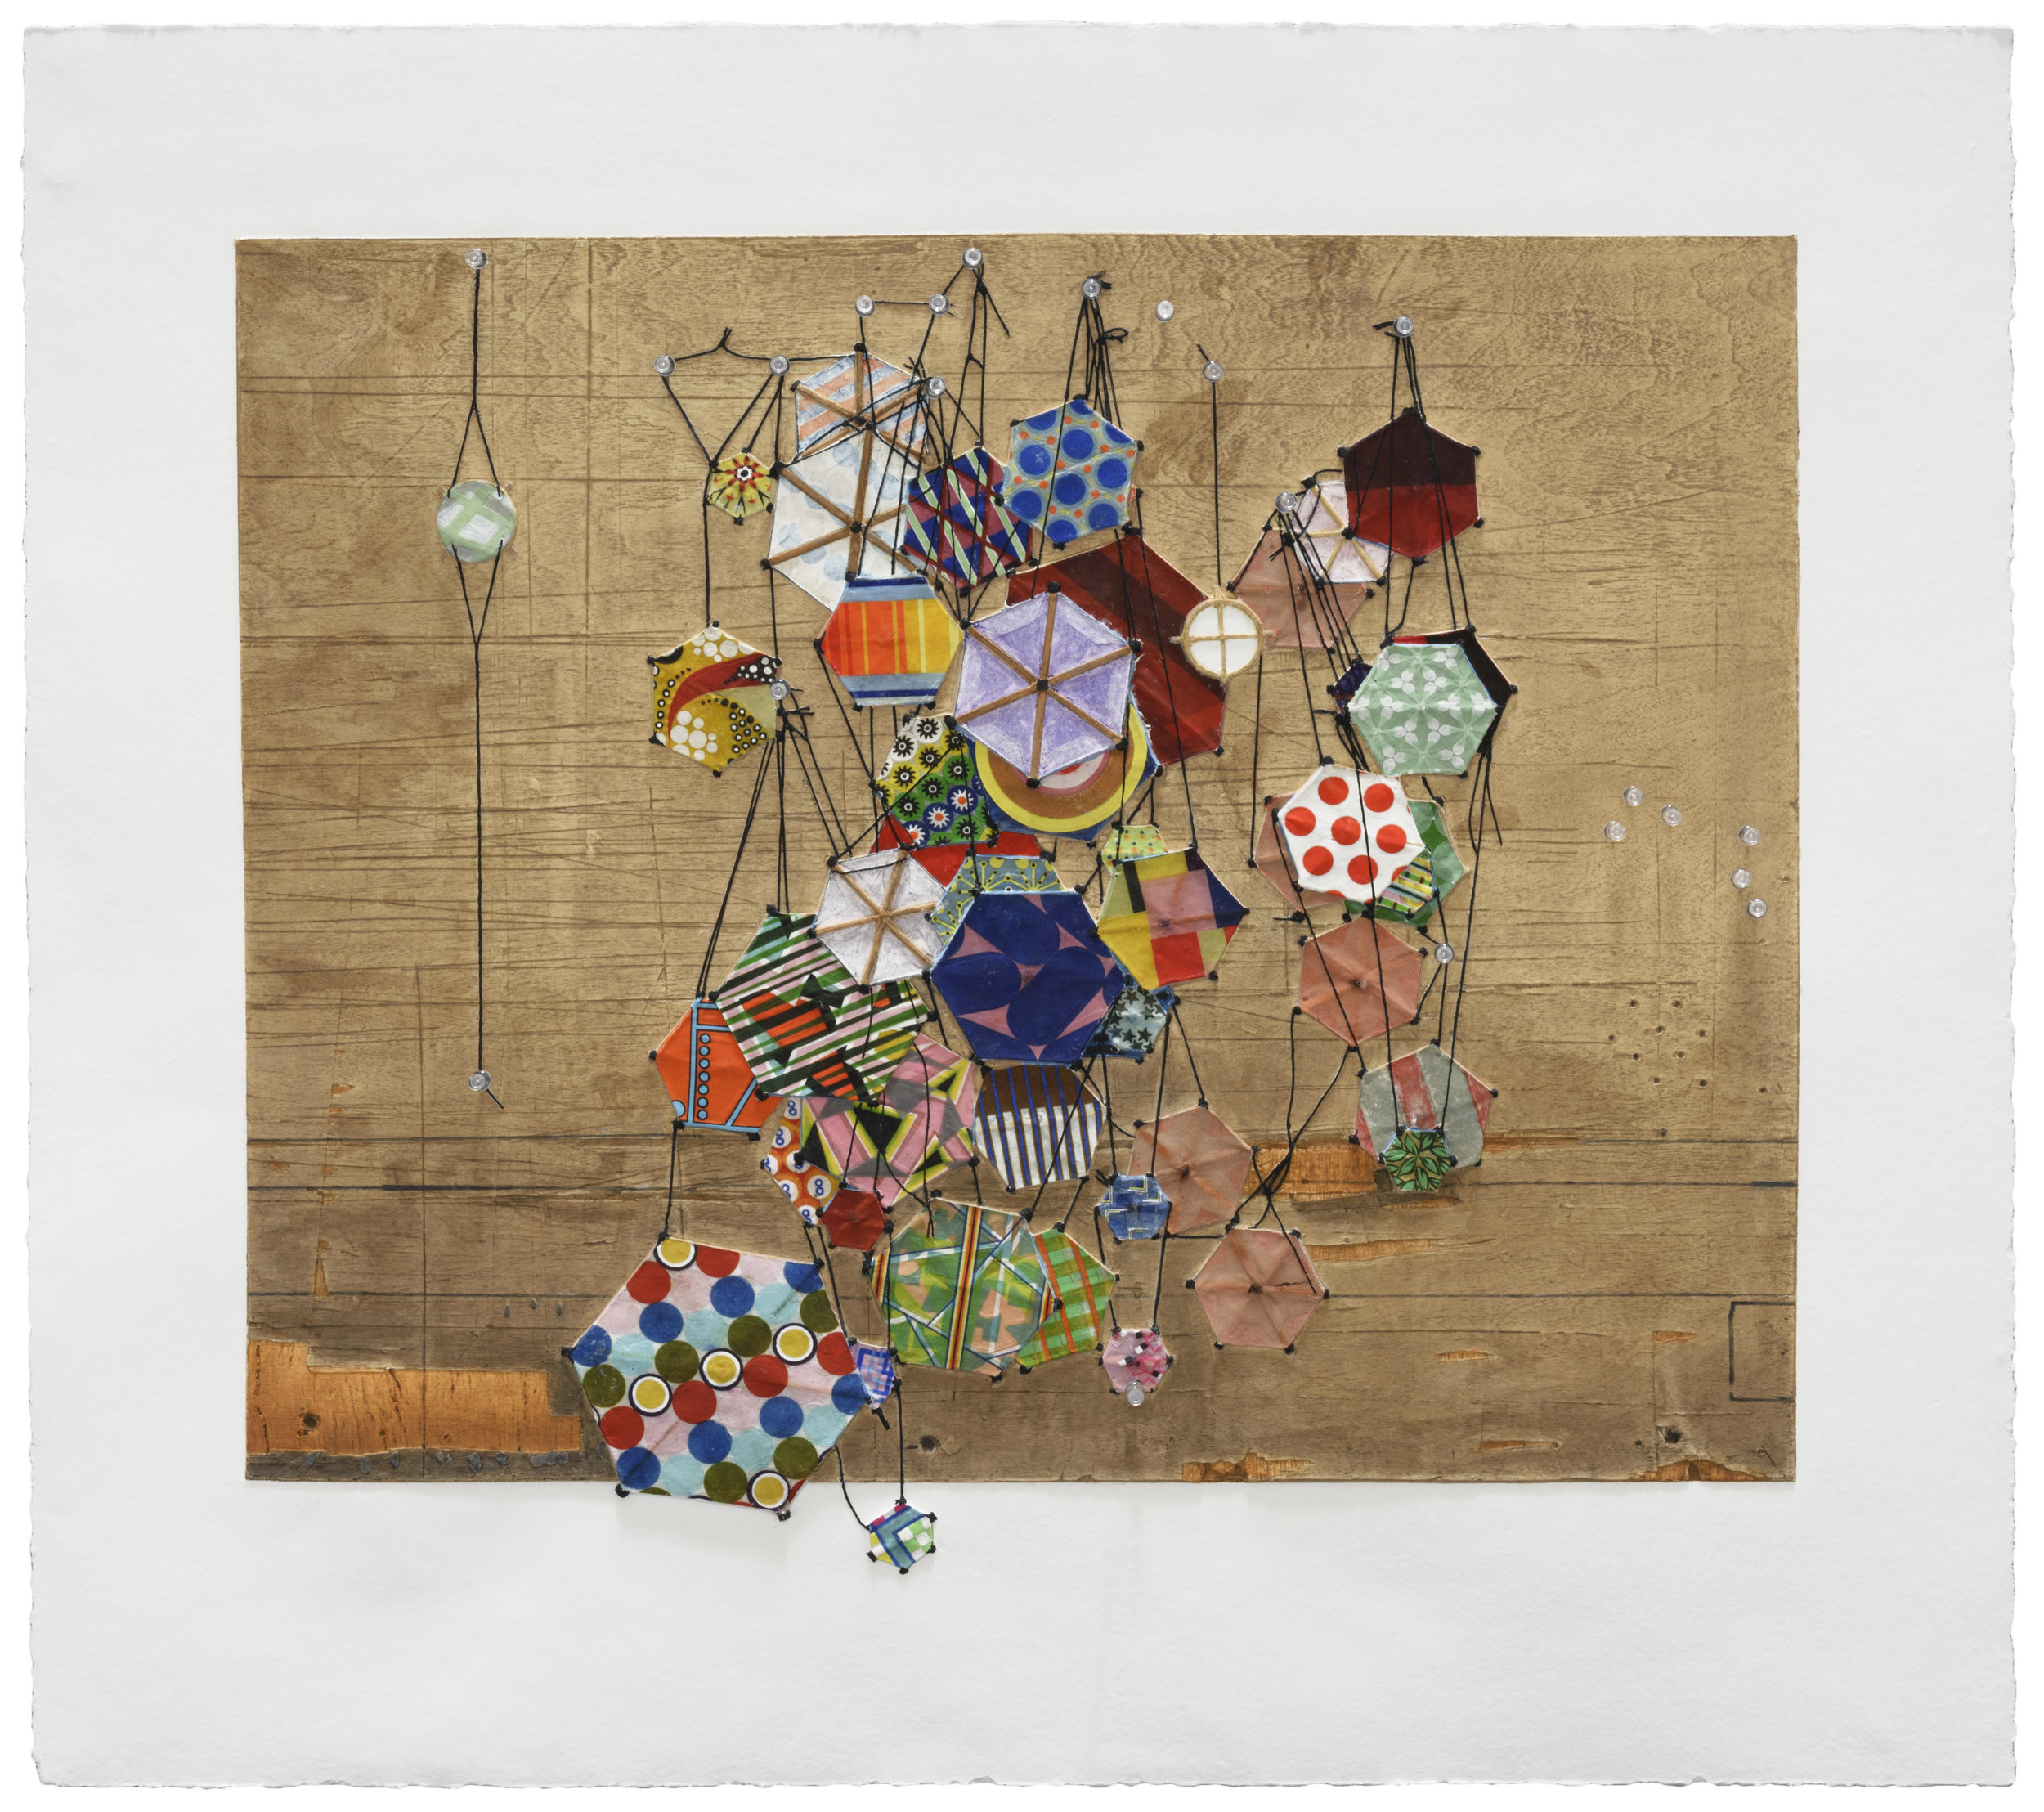 hashimoto-tiny_rooms_and_tender_promises-2016.jpg